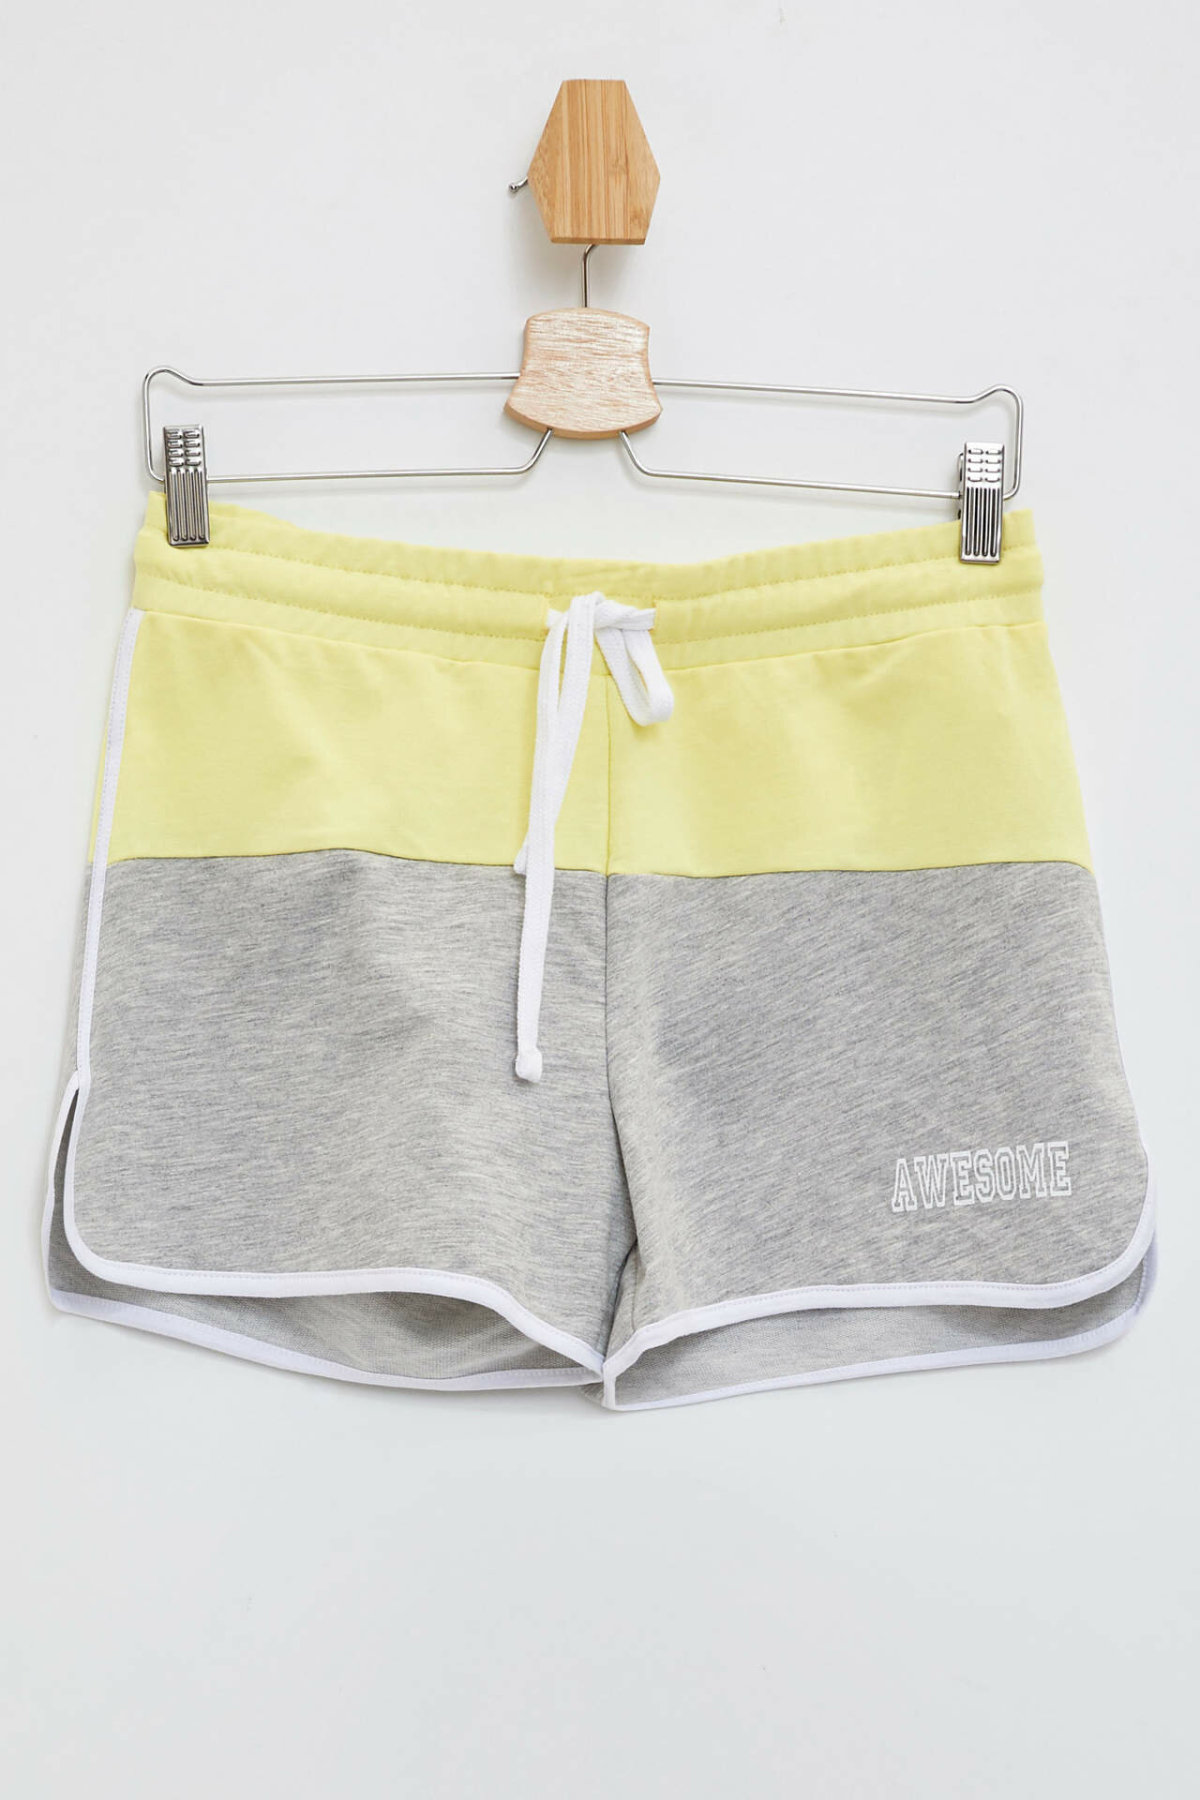 DeFacto Woman Summer Casual Short Women Lace-up Short Bottoms Female Mixed Color Grey Yellow Shorts-M2632AZ19HS